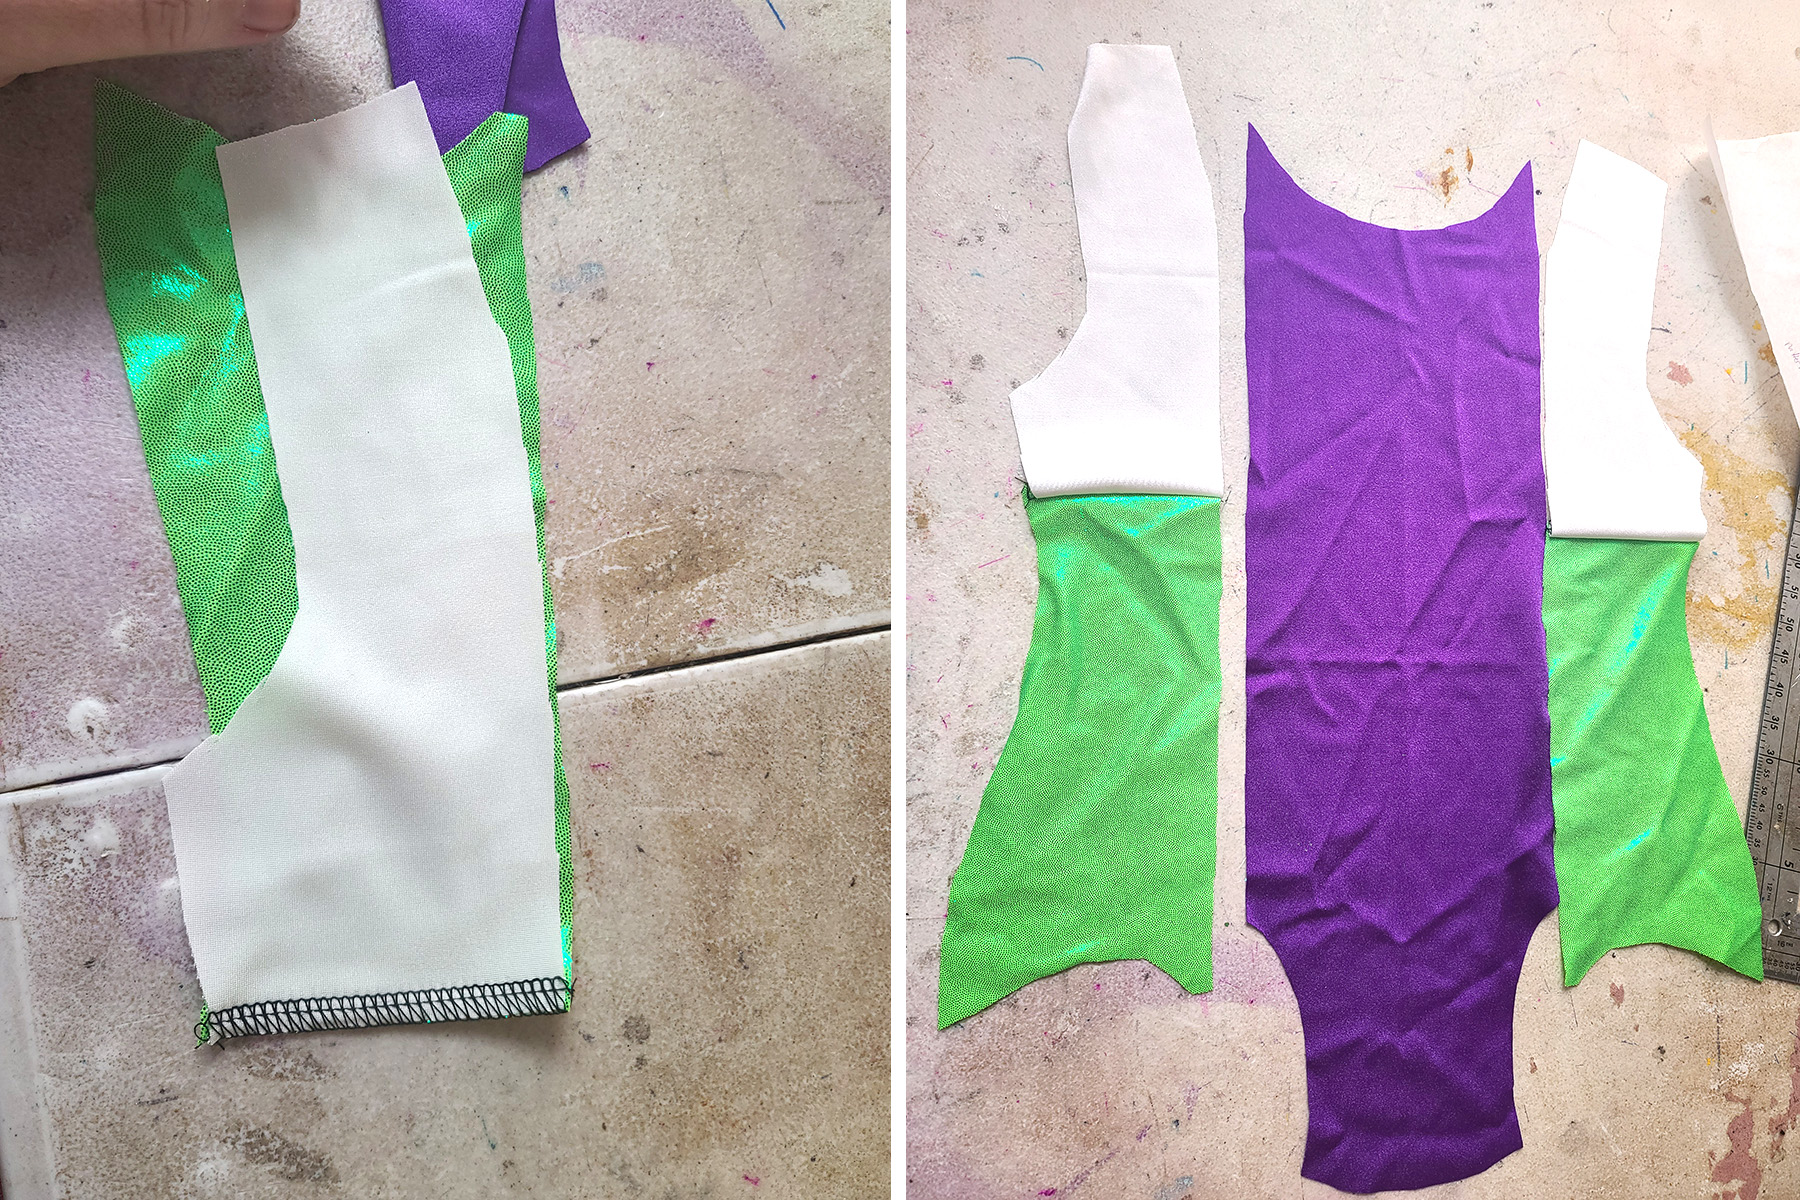 A two part compilation image showing a green piece being sewn to a white piece, then the leotard front laid out.